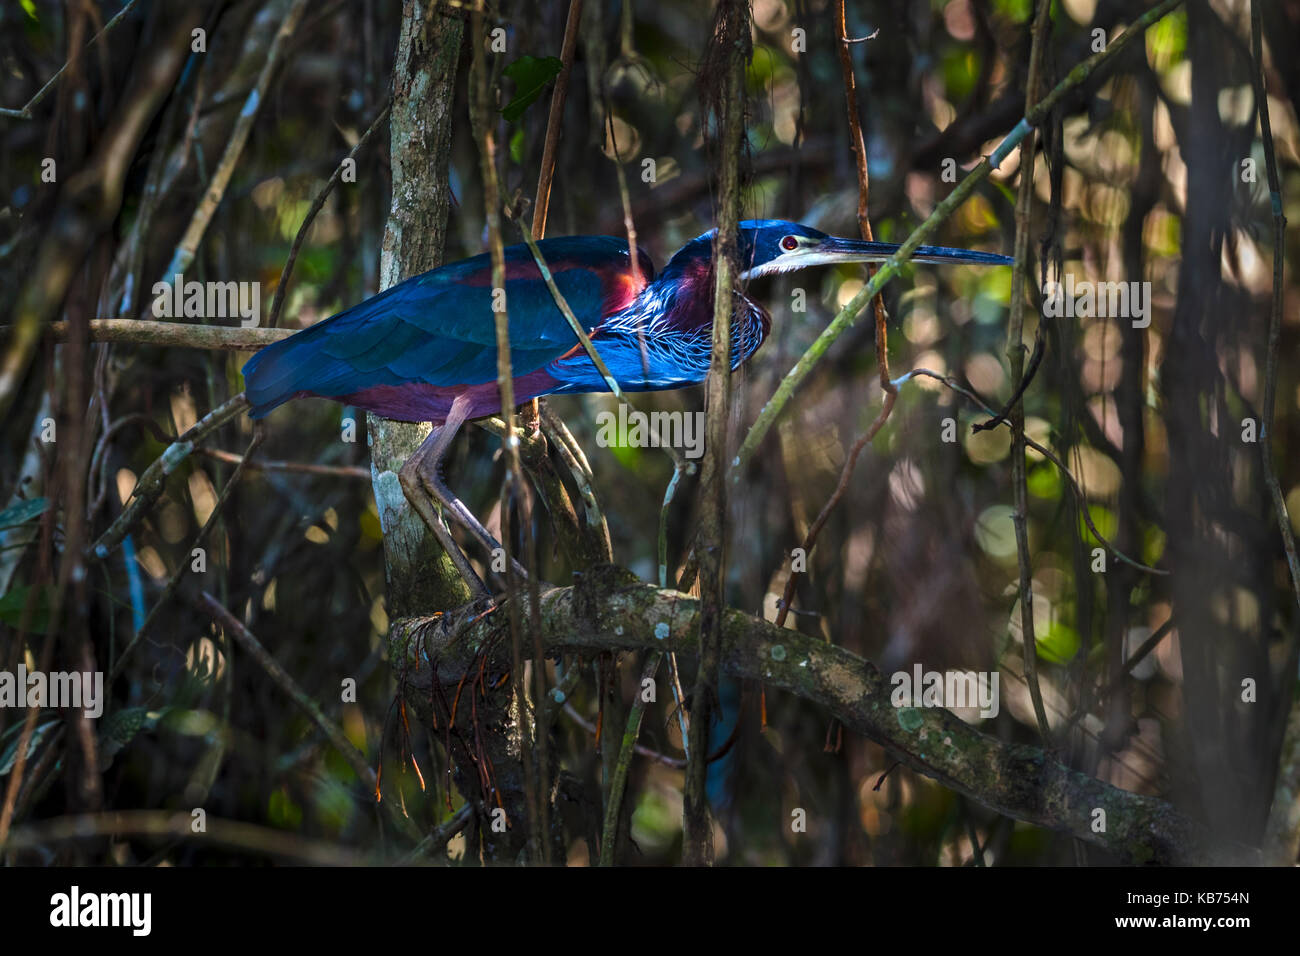 Agami Heron (Agamia agami) perched on branch, Brazil, Mato Grosso, Pantanal - Stock Image